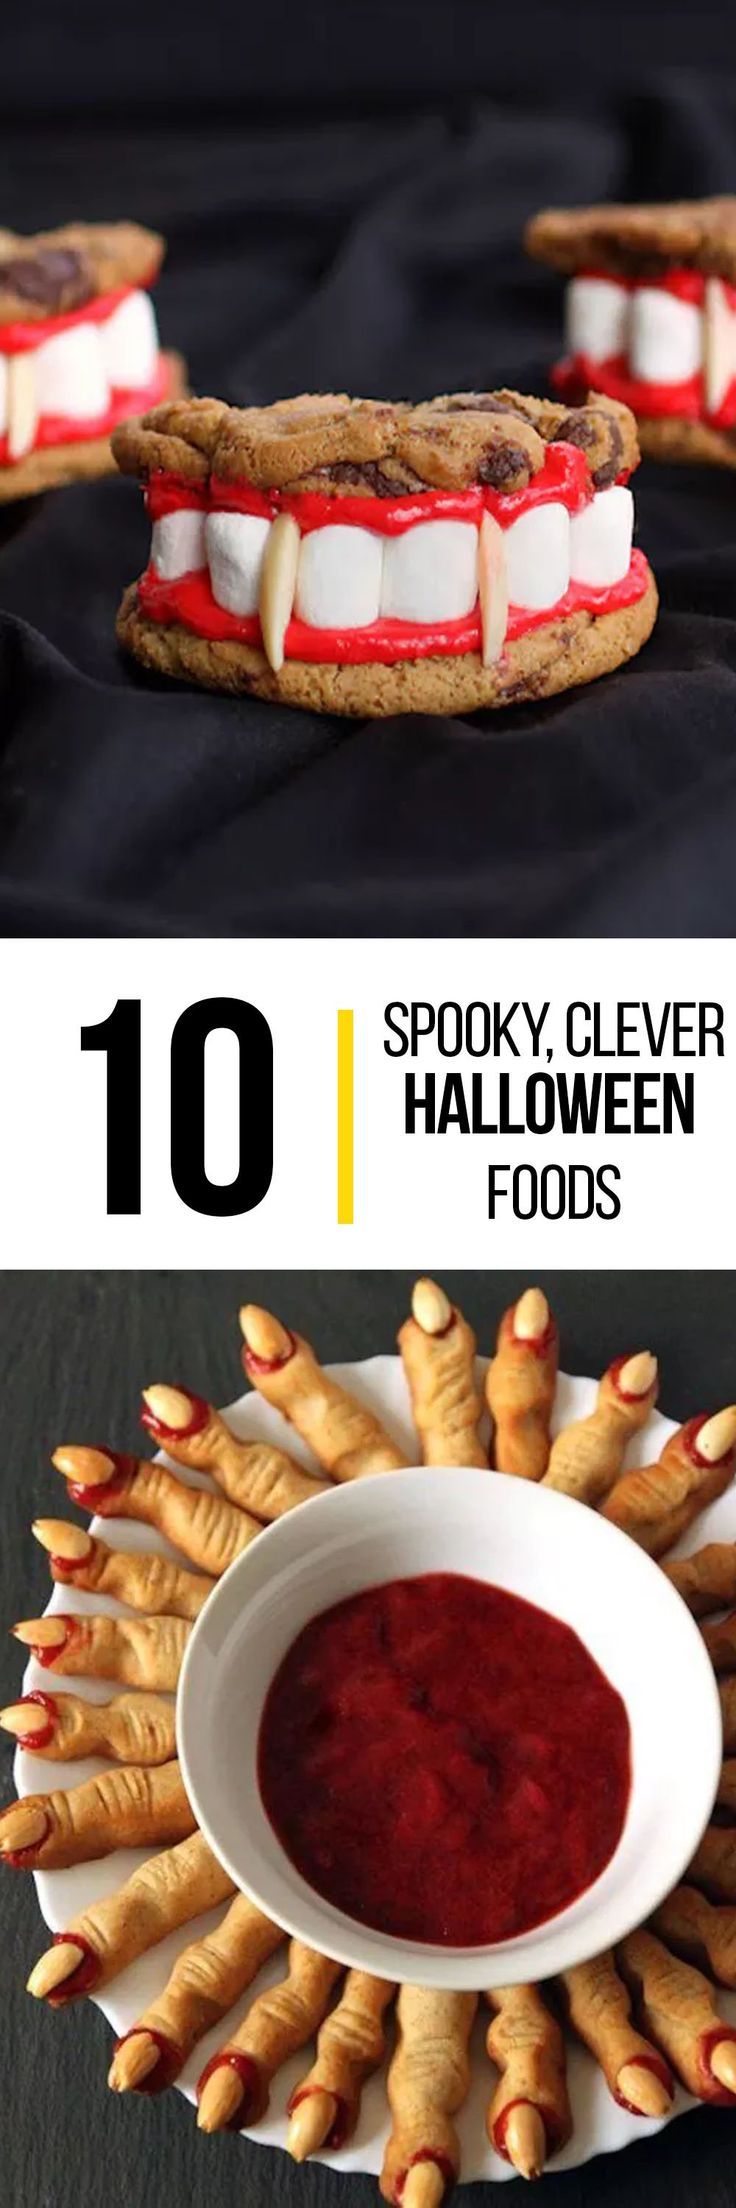 Make your food match the spooky celebration this Halloween with these 10 spooky, yet clever halloween-themed foods to serve. This roundup has some of the most creative Halloween food ideas from treats to appetizers, you'll up your party game and make this a spooktacular event.